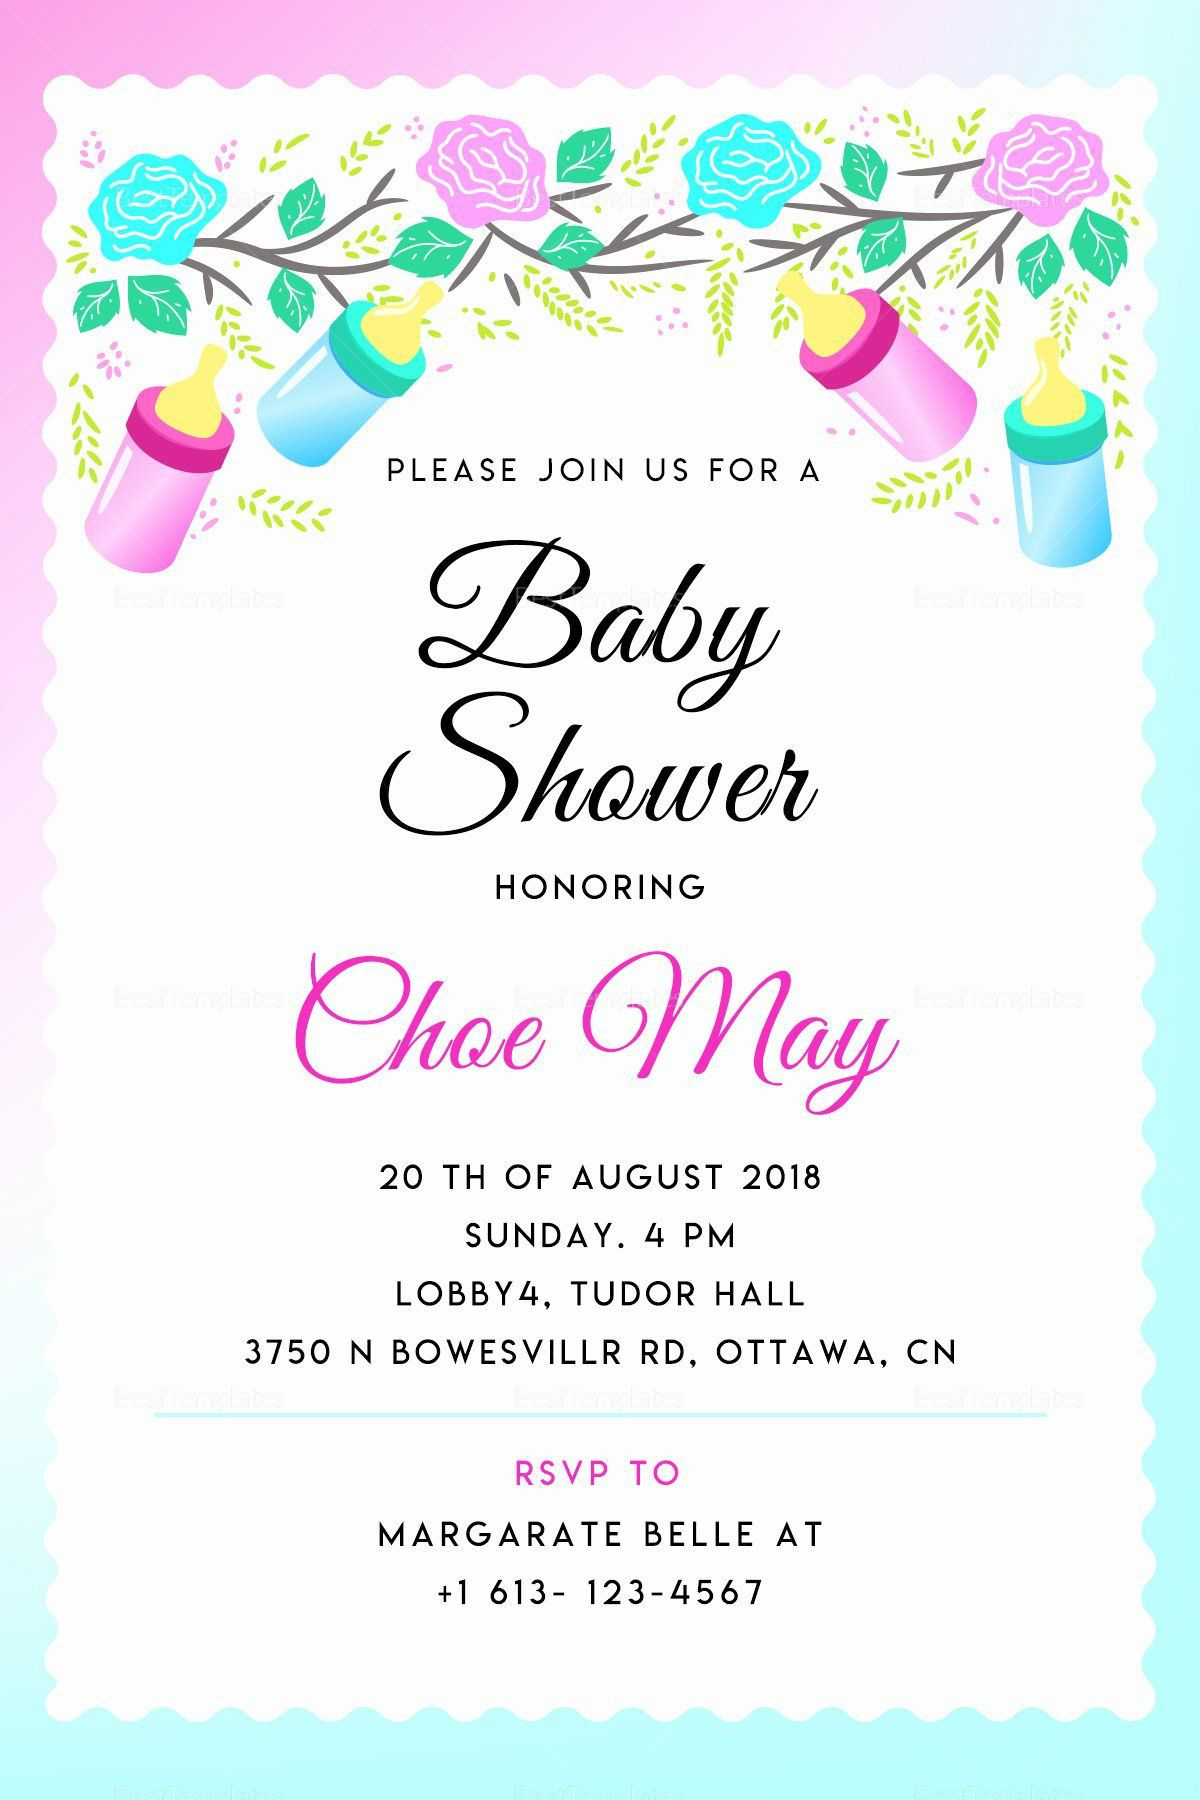 000 Sensational Baby Shower Invitation Template Word Picture  Office Wording Sample Work DownloadFull